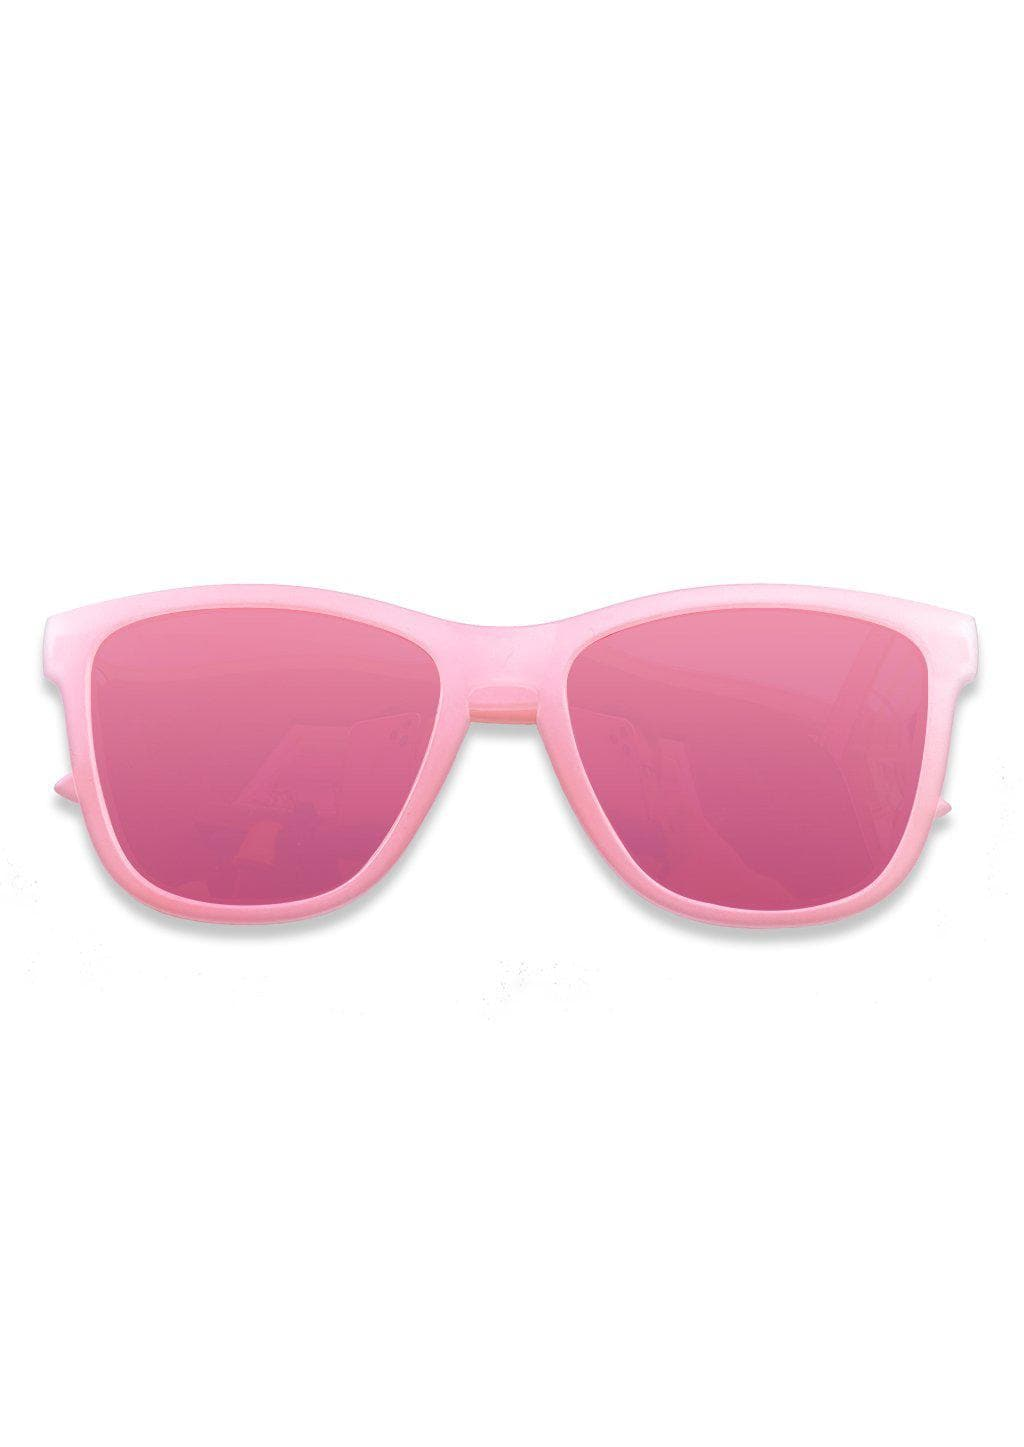 Our Mood V2 is an improved version of our last wayfarers. Plastic body for great quality and durabilty. This is Flamingo with a pink transparent frame and pink mirror lenses. From the front.